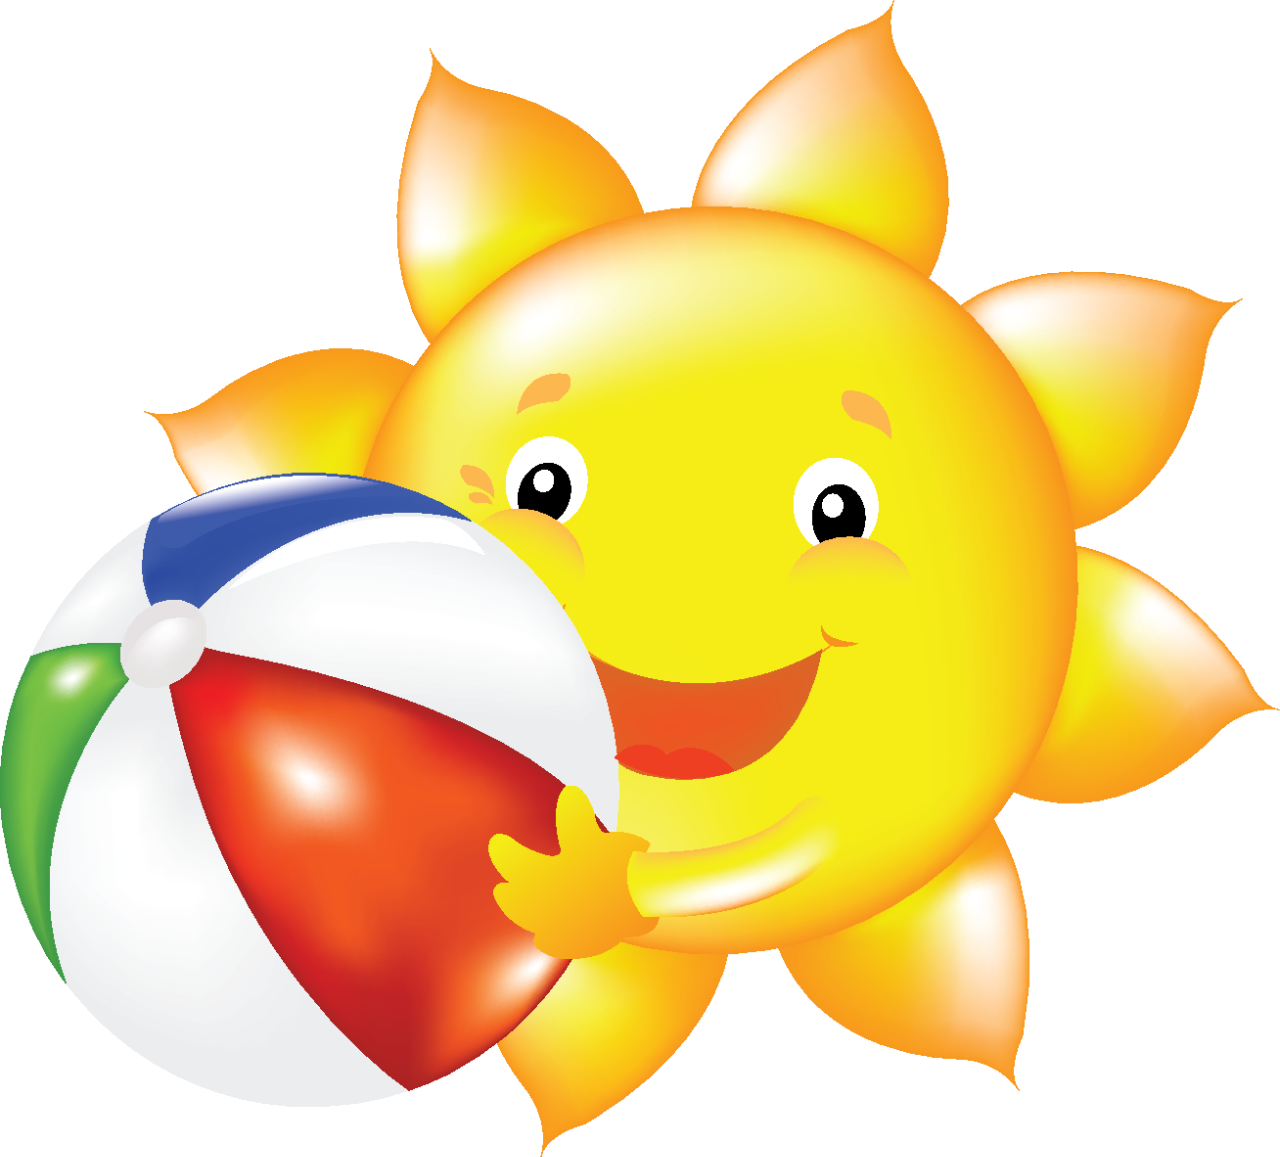 Summer Sun Clip Art Animated Smiley Faces Clip Art Clipart Smiley